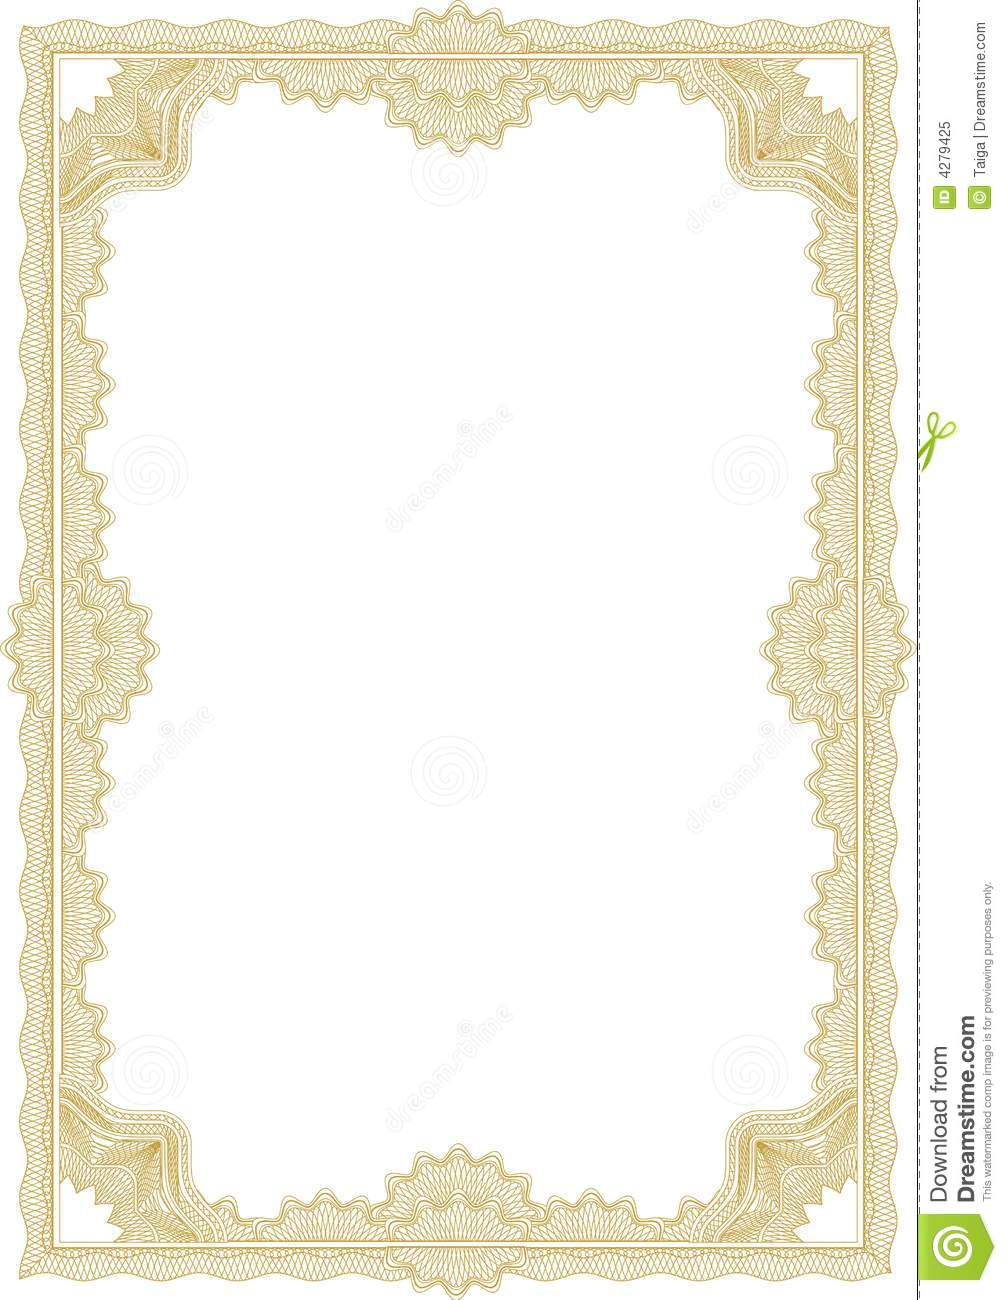 Guilloche Border For Diploma Or Certificate Royalty Free